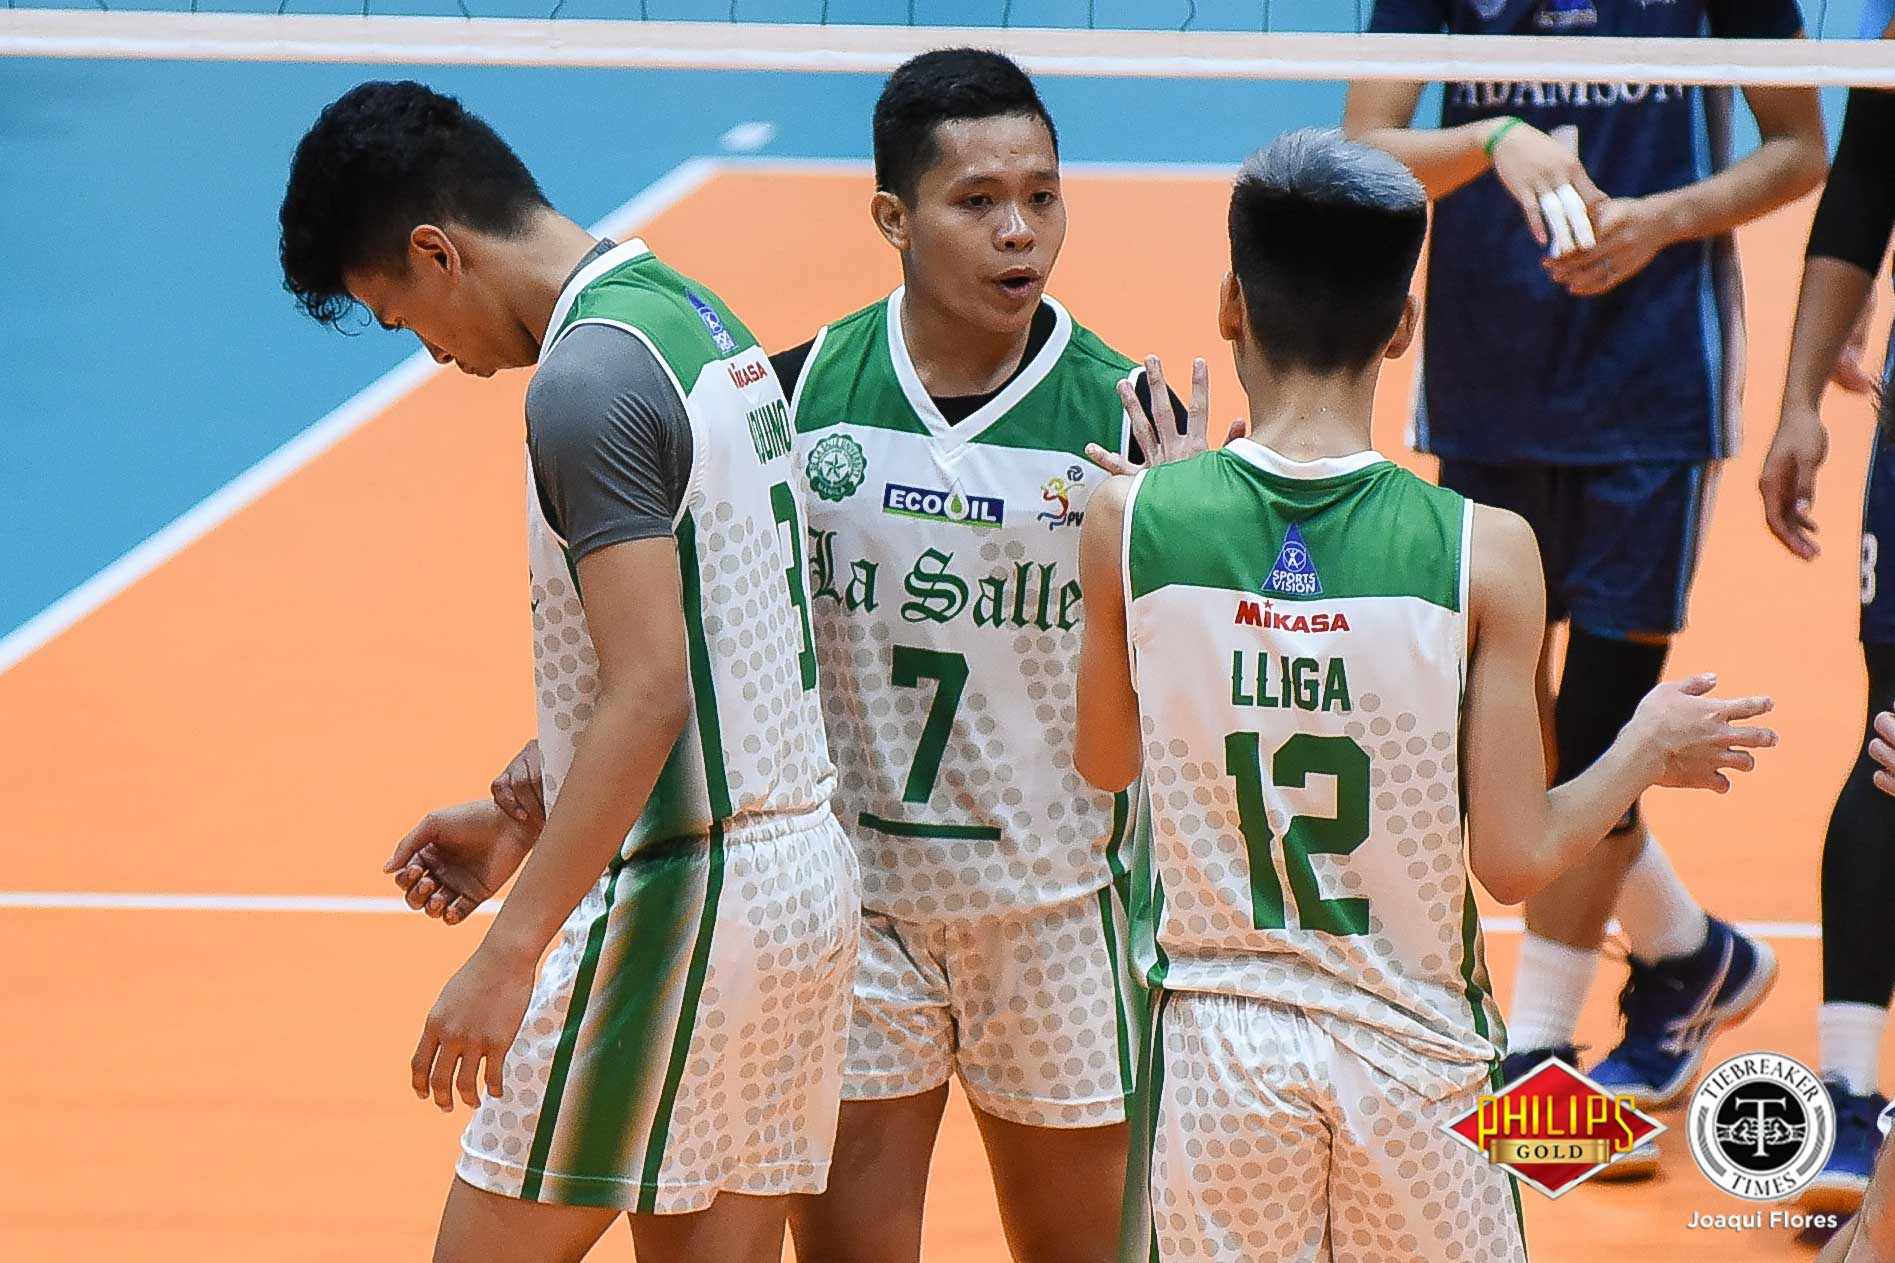 Tiebreaker Times La Salle cruises past San Beda for maiden win DLSU News PVL SBC Volleyball  Wayne Marco San Beda Men's Volleyball Raphael Sumalinog Nes Pamilar Jomaru Amagan DLSU Men's Volleyball Cris Dumago Christian Antiporta 2018 PVL Season 2018 PVL Men's Collegiate Conference